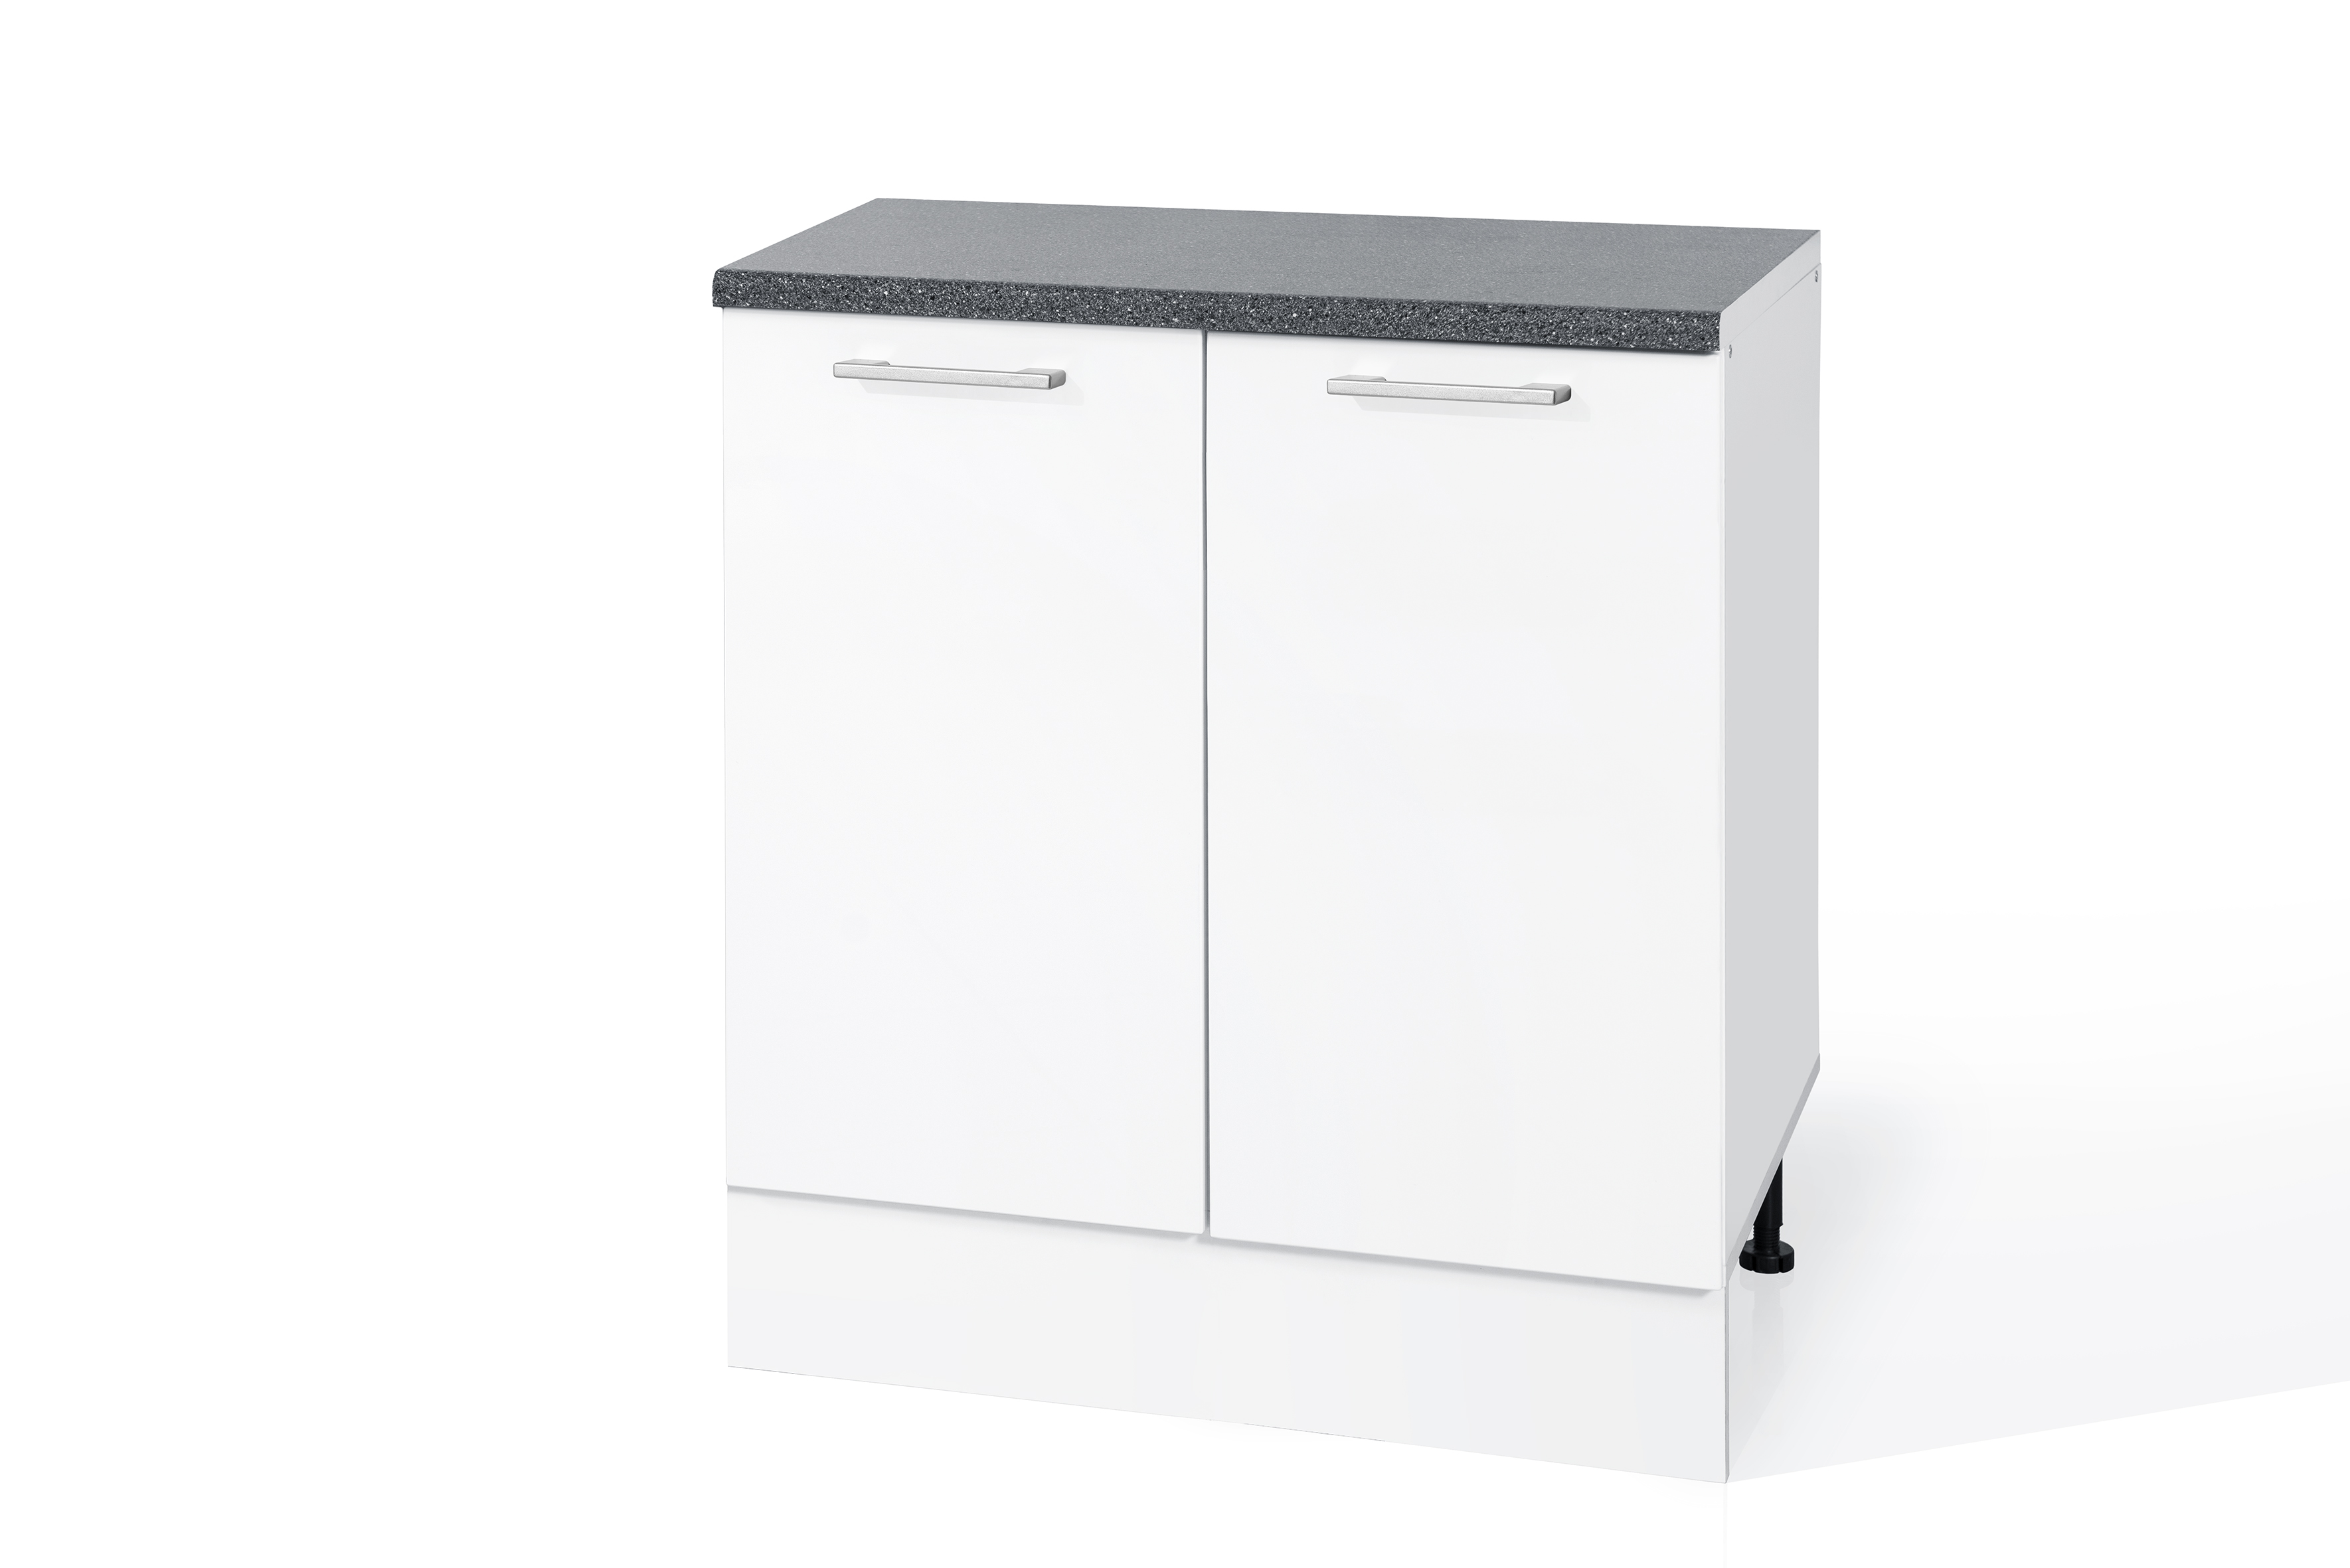 PVC Satin White Double Door Base cabinet S80 for kitchen